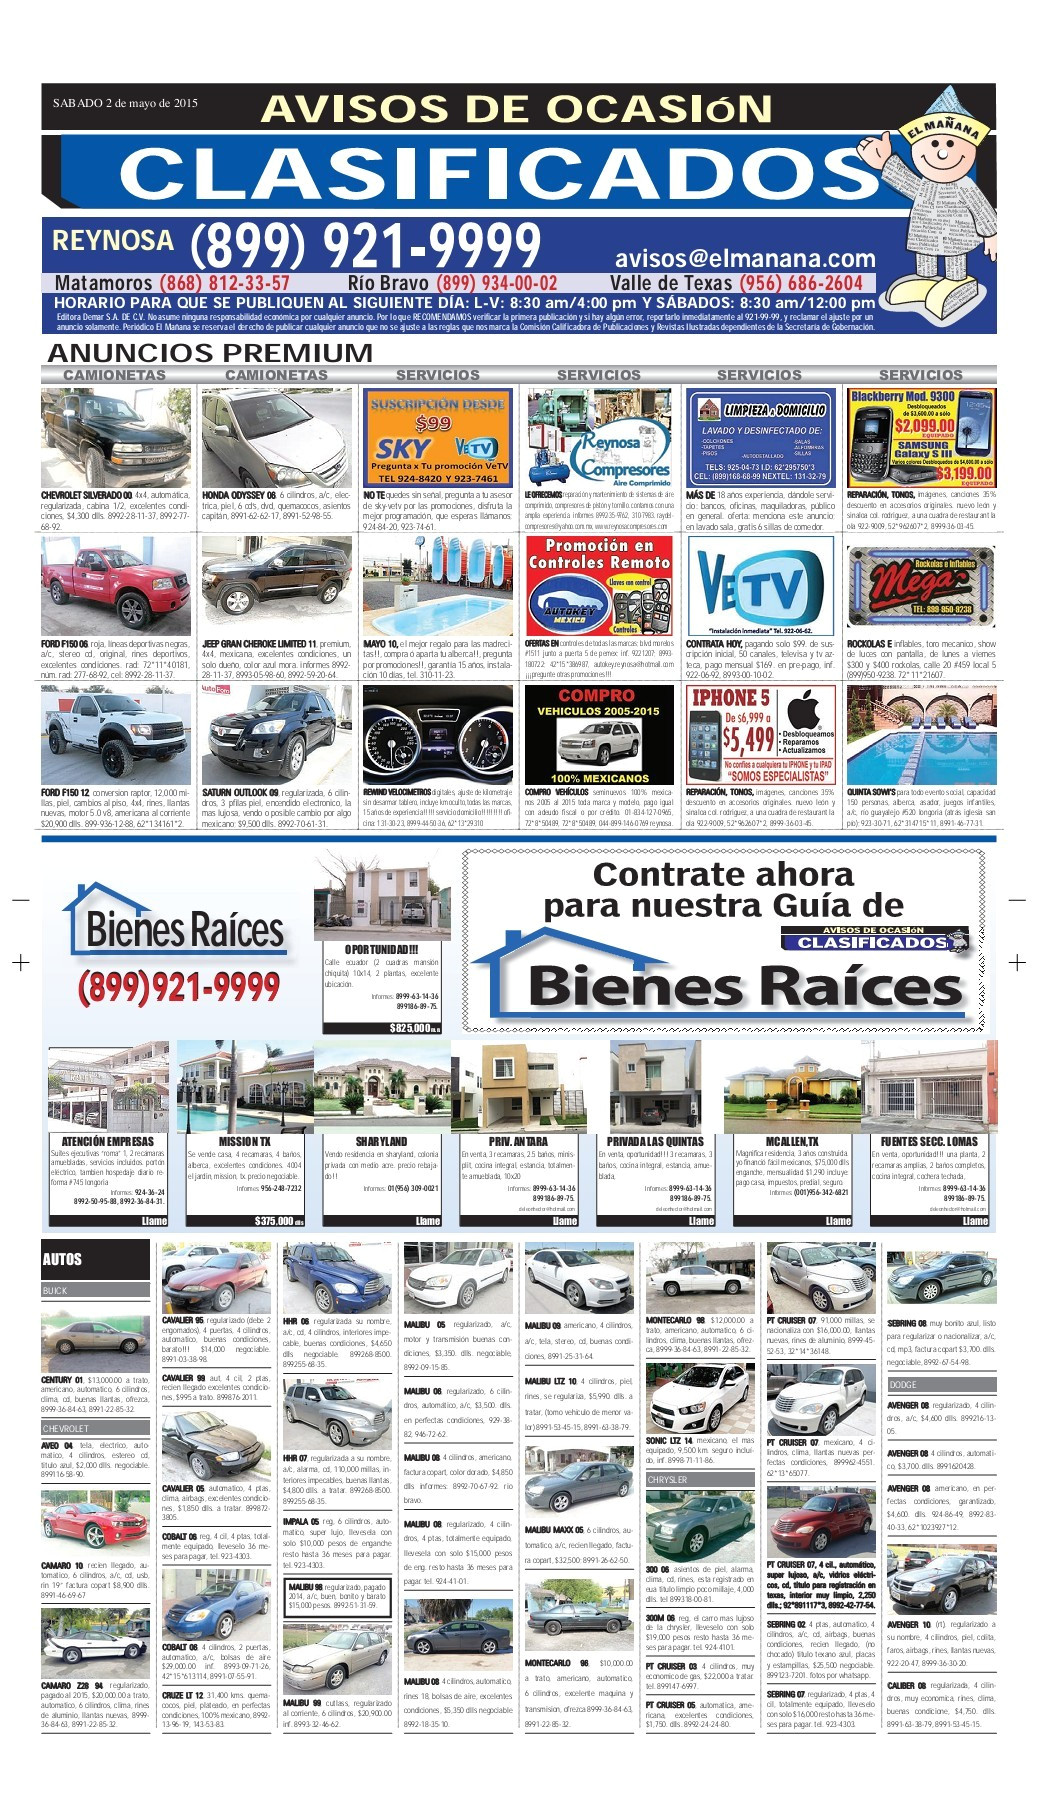 Venta De Carritos Para Tacos Usados En San Luis Potosi Avi20150502 Pages 1 10 Text Version Fliphtml5